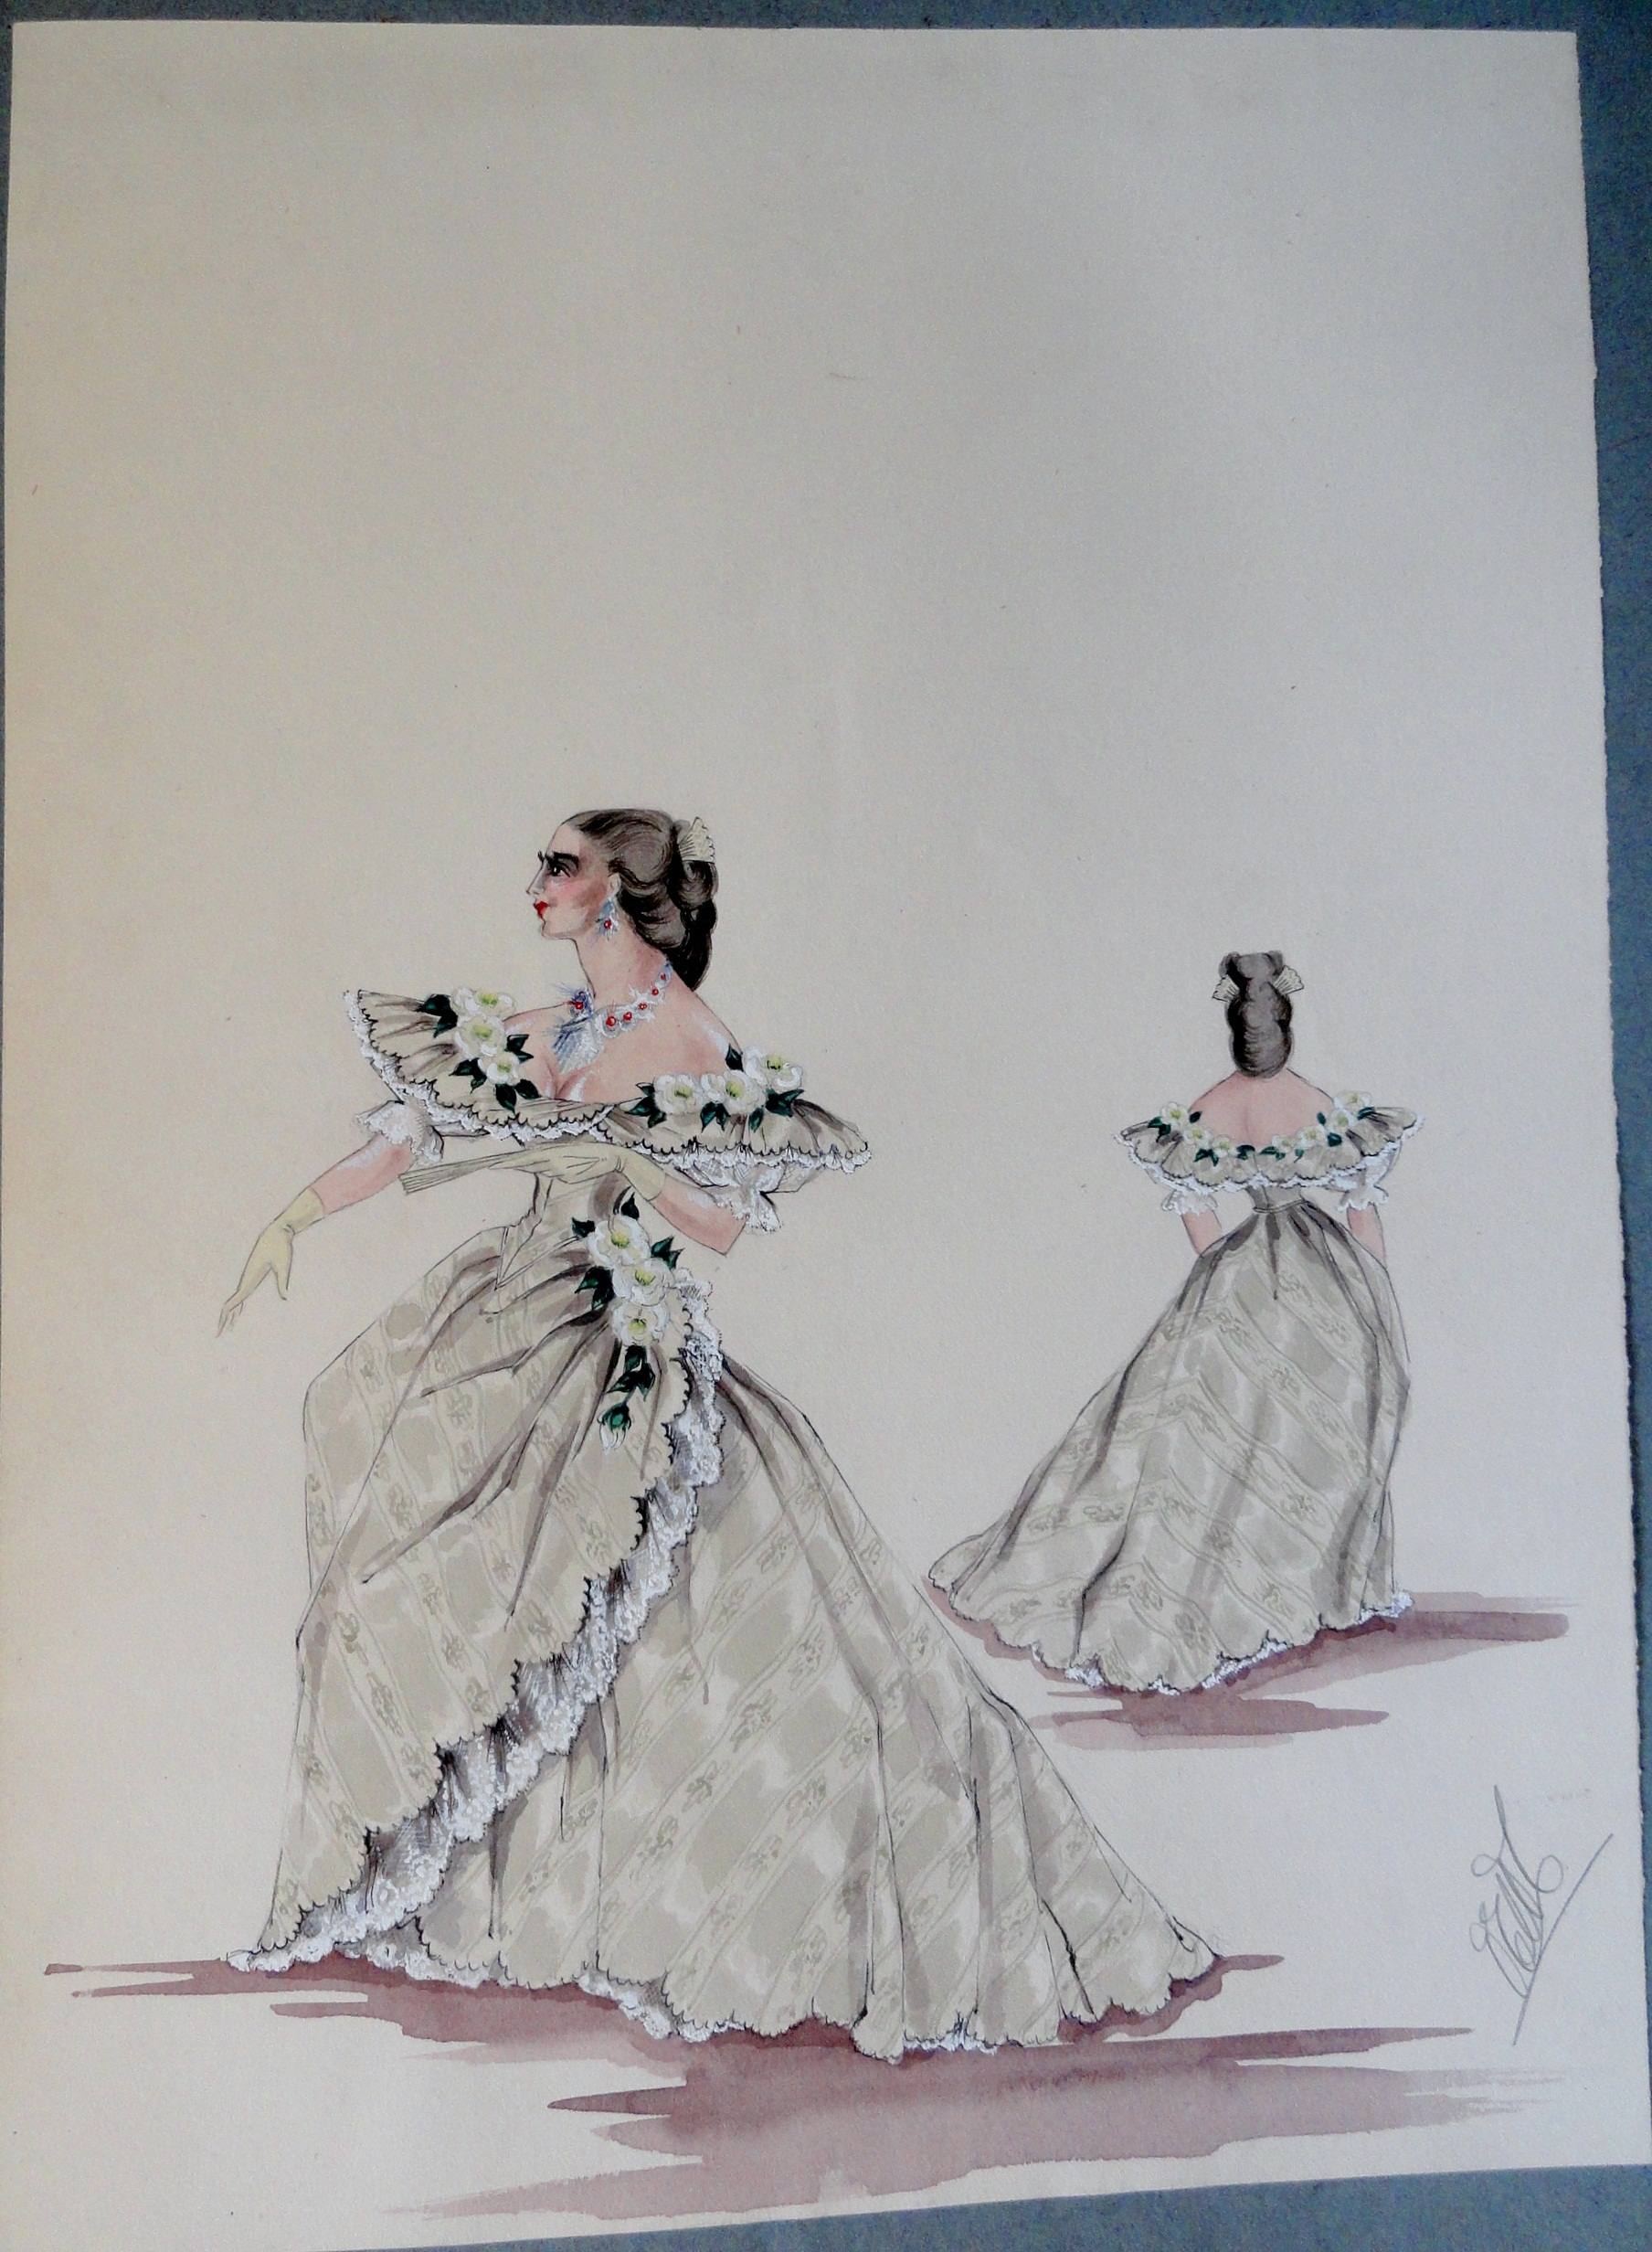 Rachel in light green gown with lace fringe flowered collar. Pen and ink and watercolor on paper.  From The Rachel Portfolio by Owen Hyde Clark. $300.00.